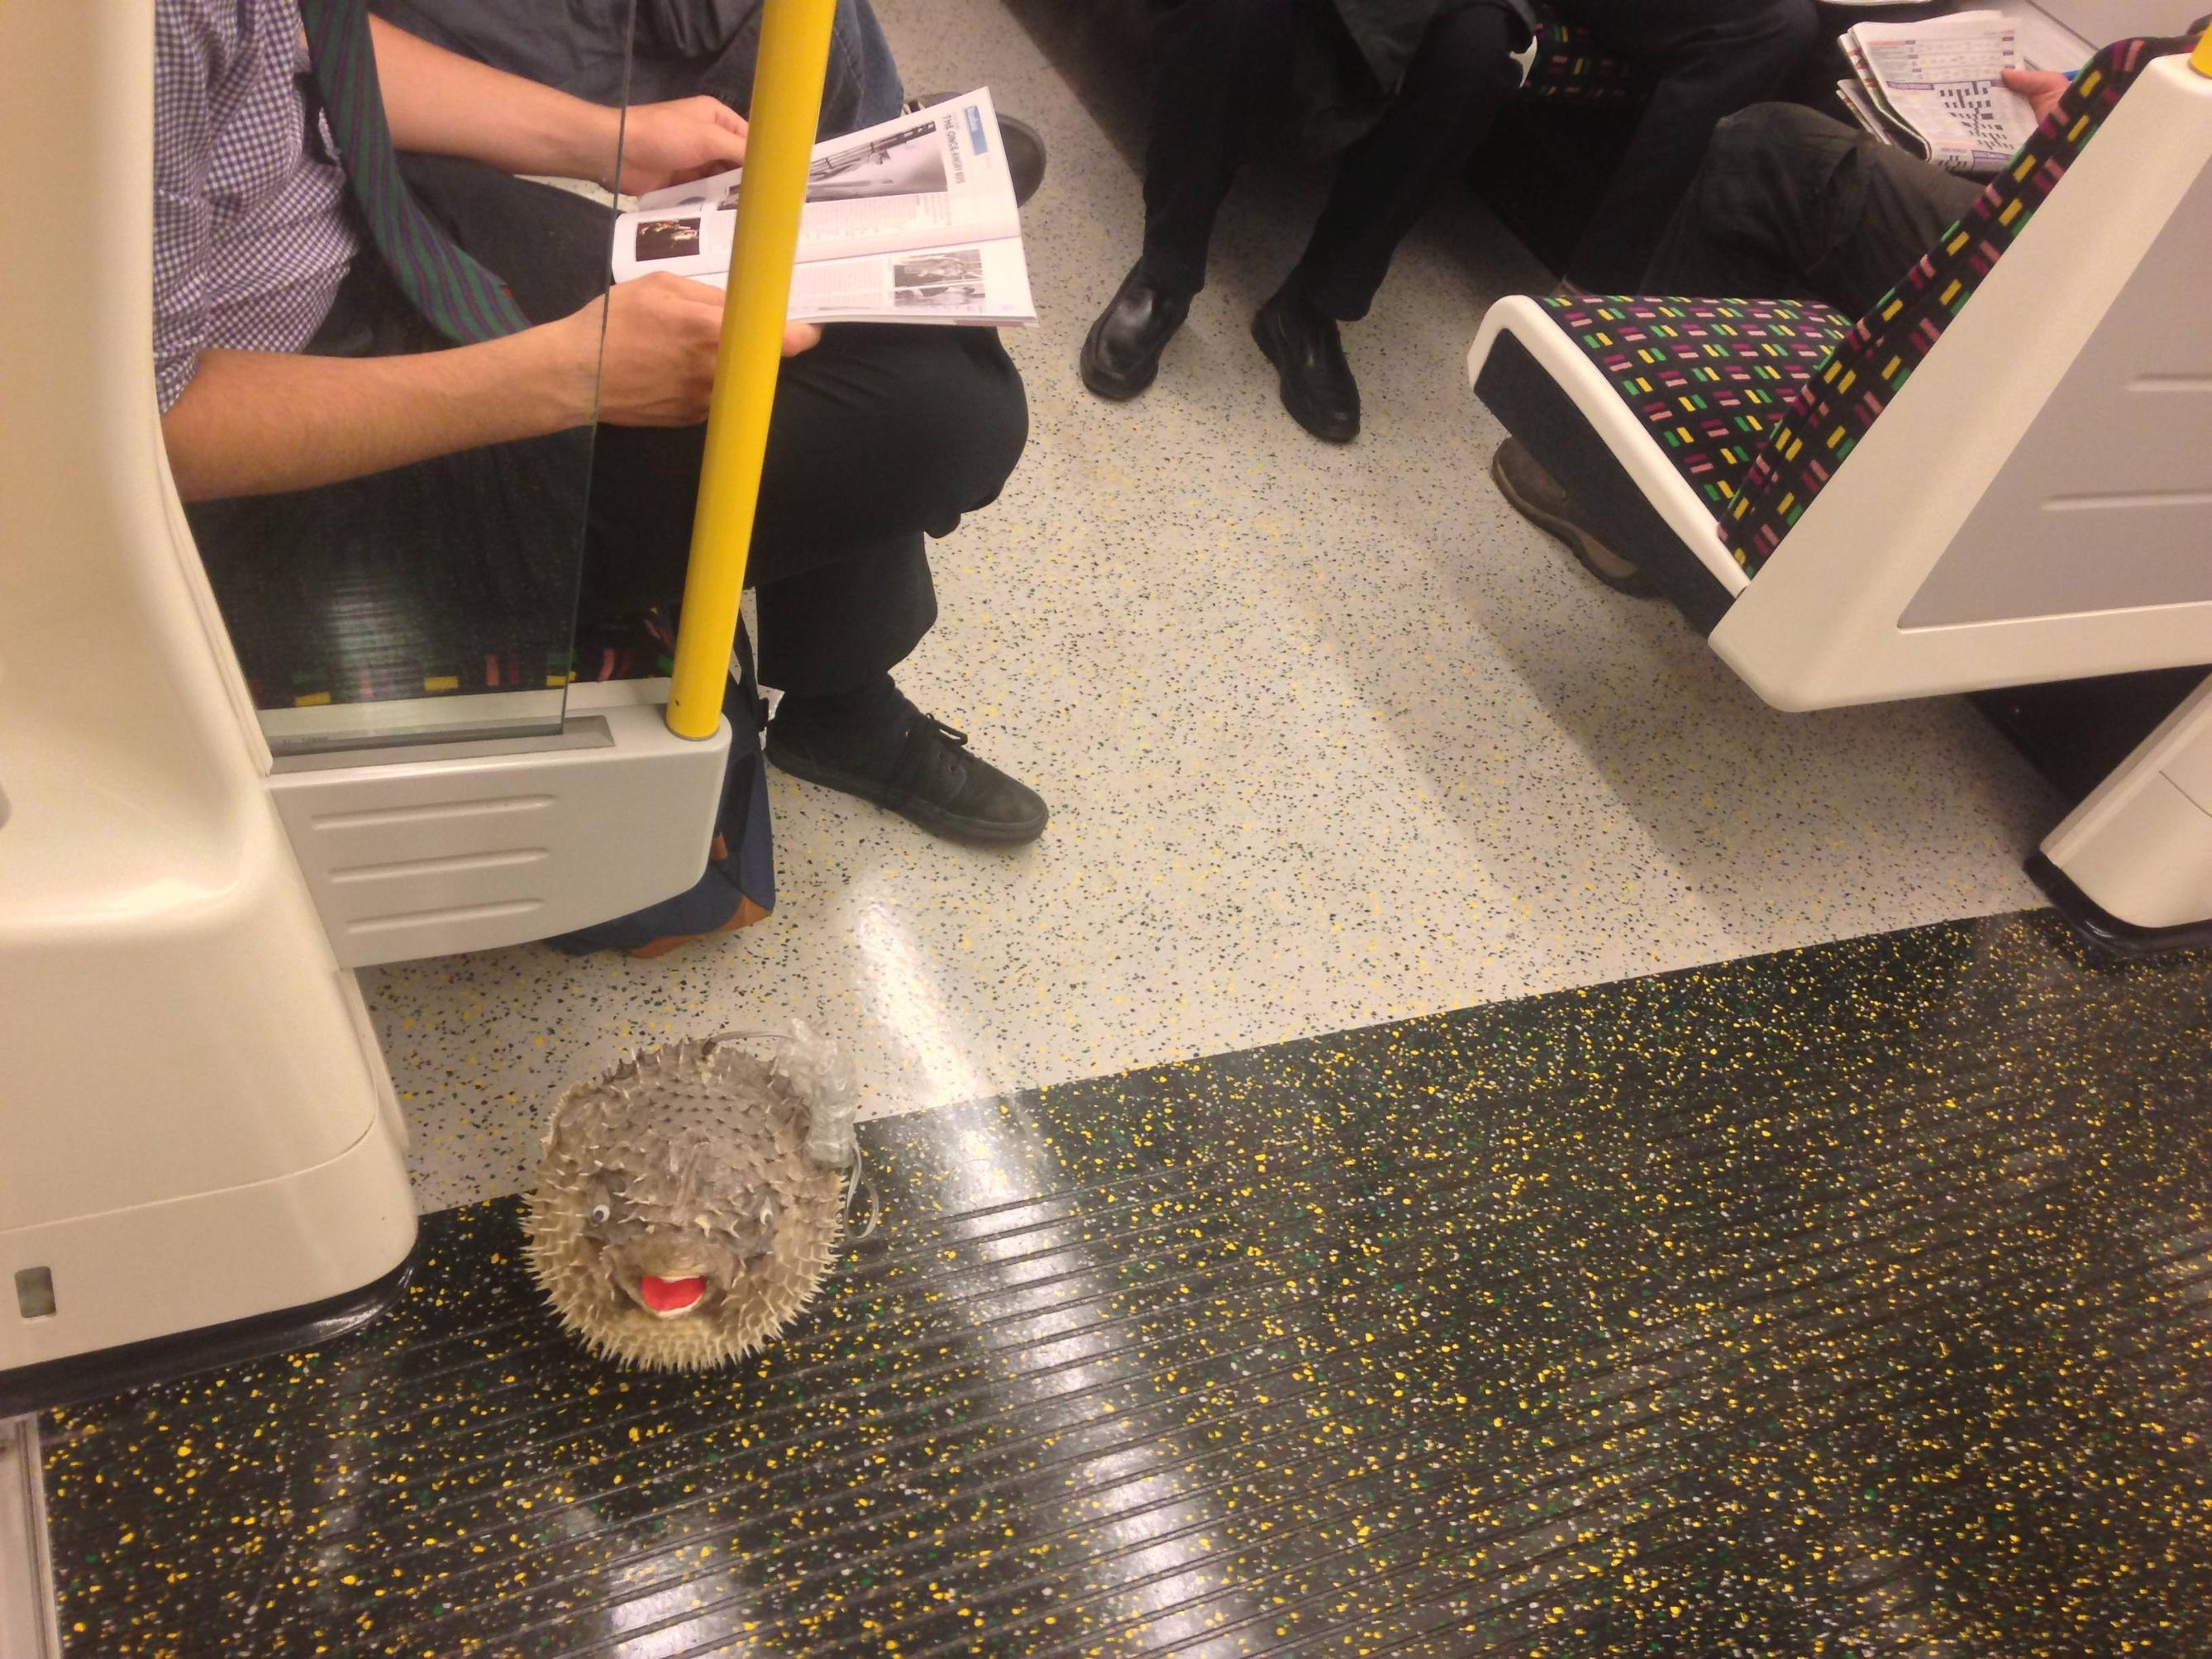 Fish appear to be travelling by trains an increasing amount. I saw this Puffer Fish on the tube in London over the weekend - Imgur